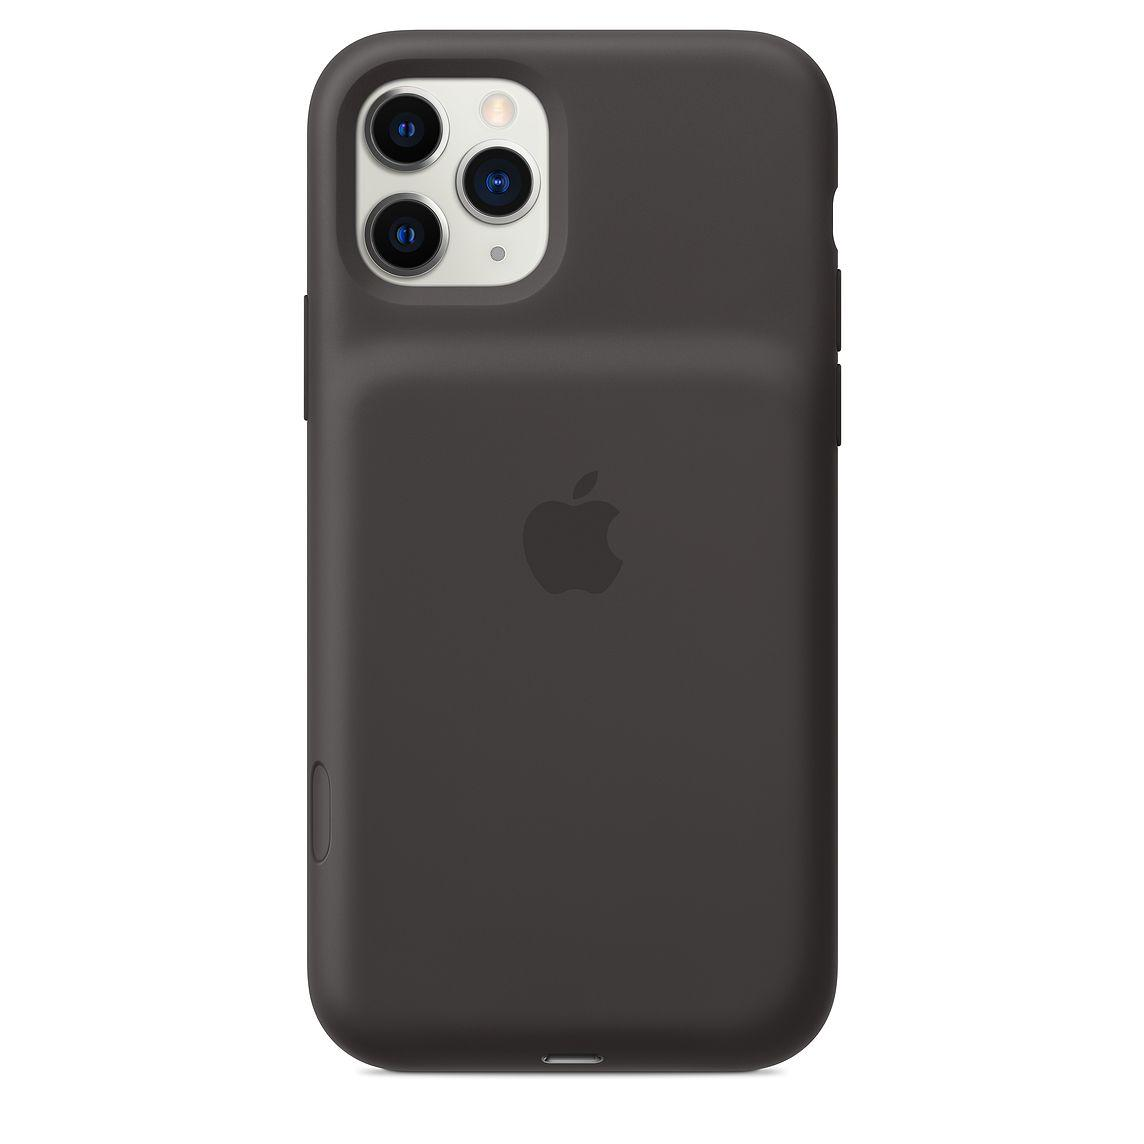 Apple iPhone 11 Pro Smart Battery Case | Accessories for Mobile Phones & Tablets for sale in Ikeja, Lagos State, Nigeria